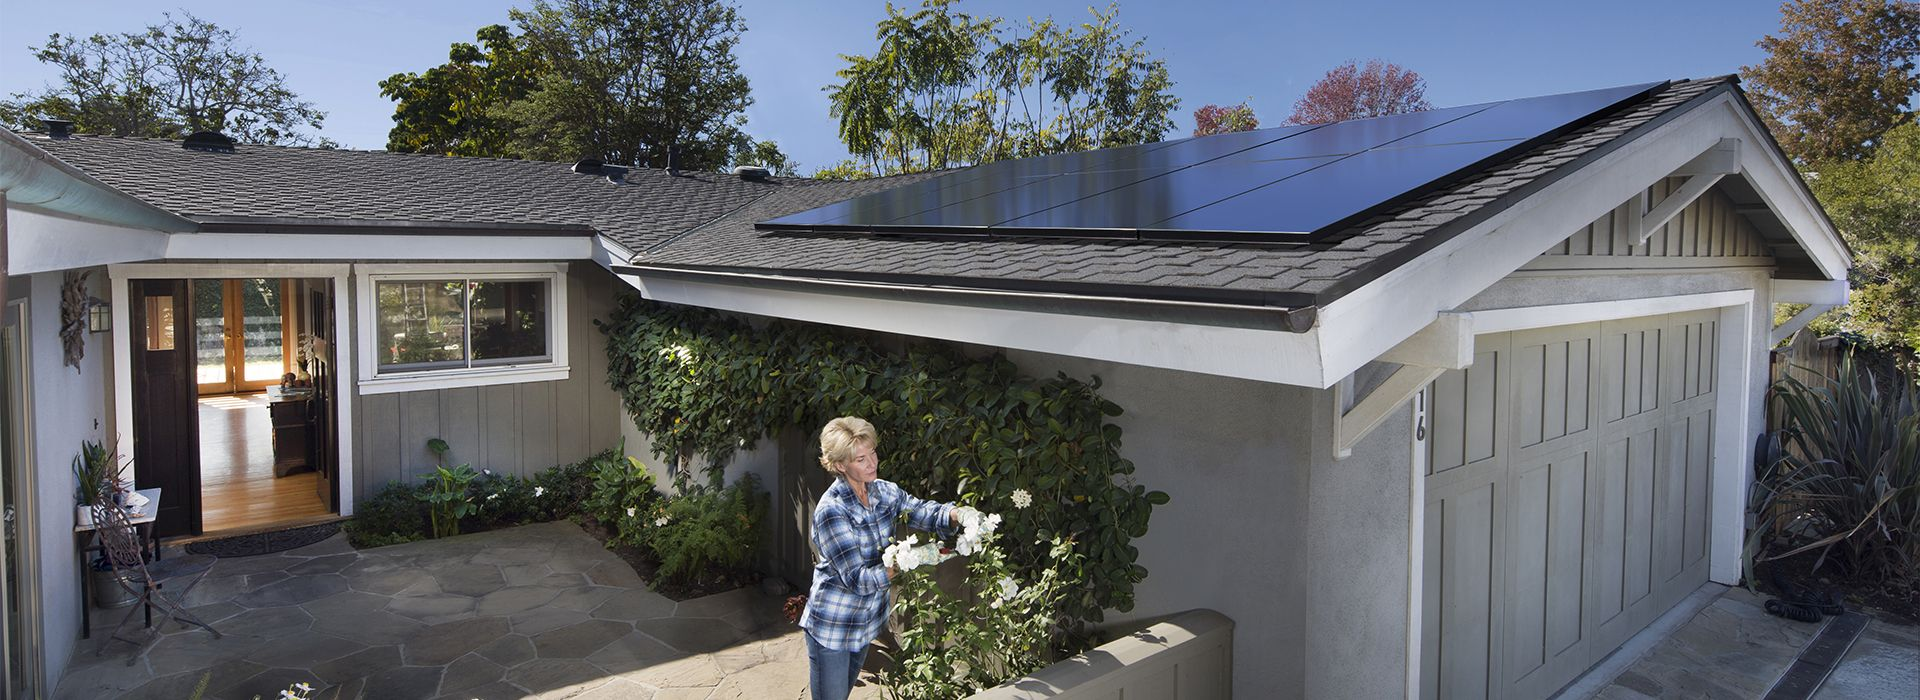 woman pruning roses in front of home with sunpower solar panels